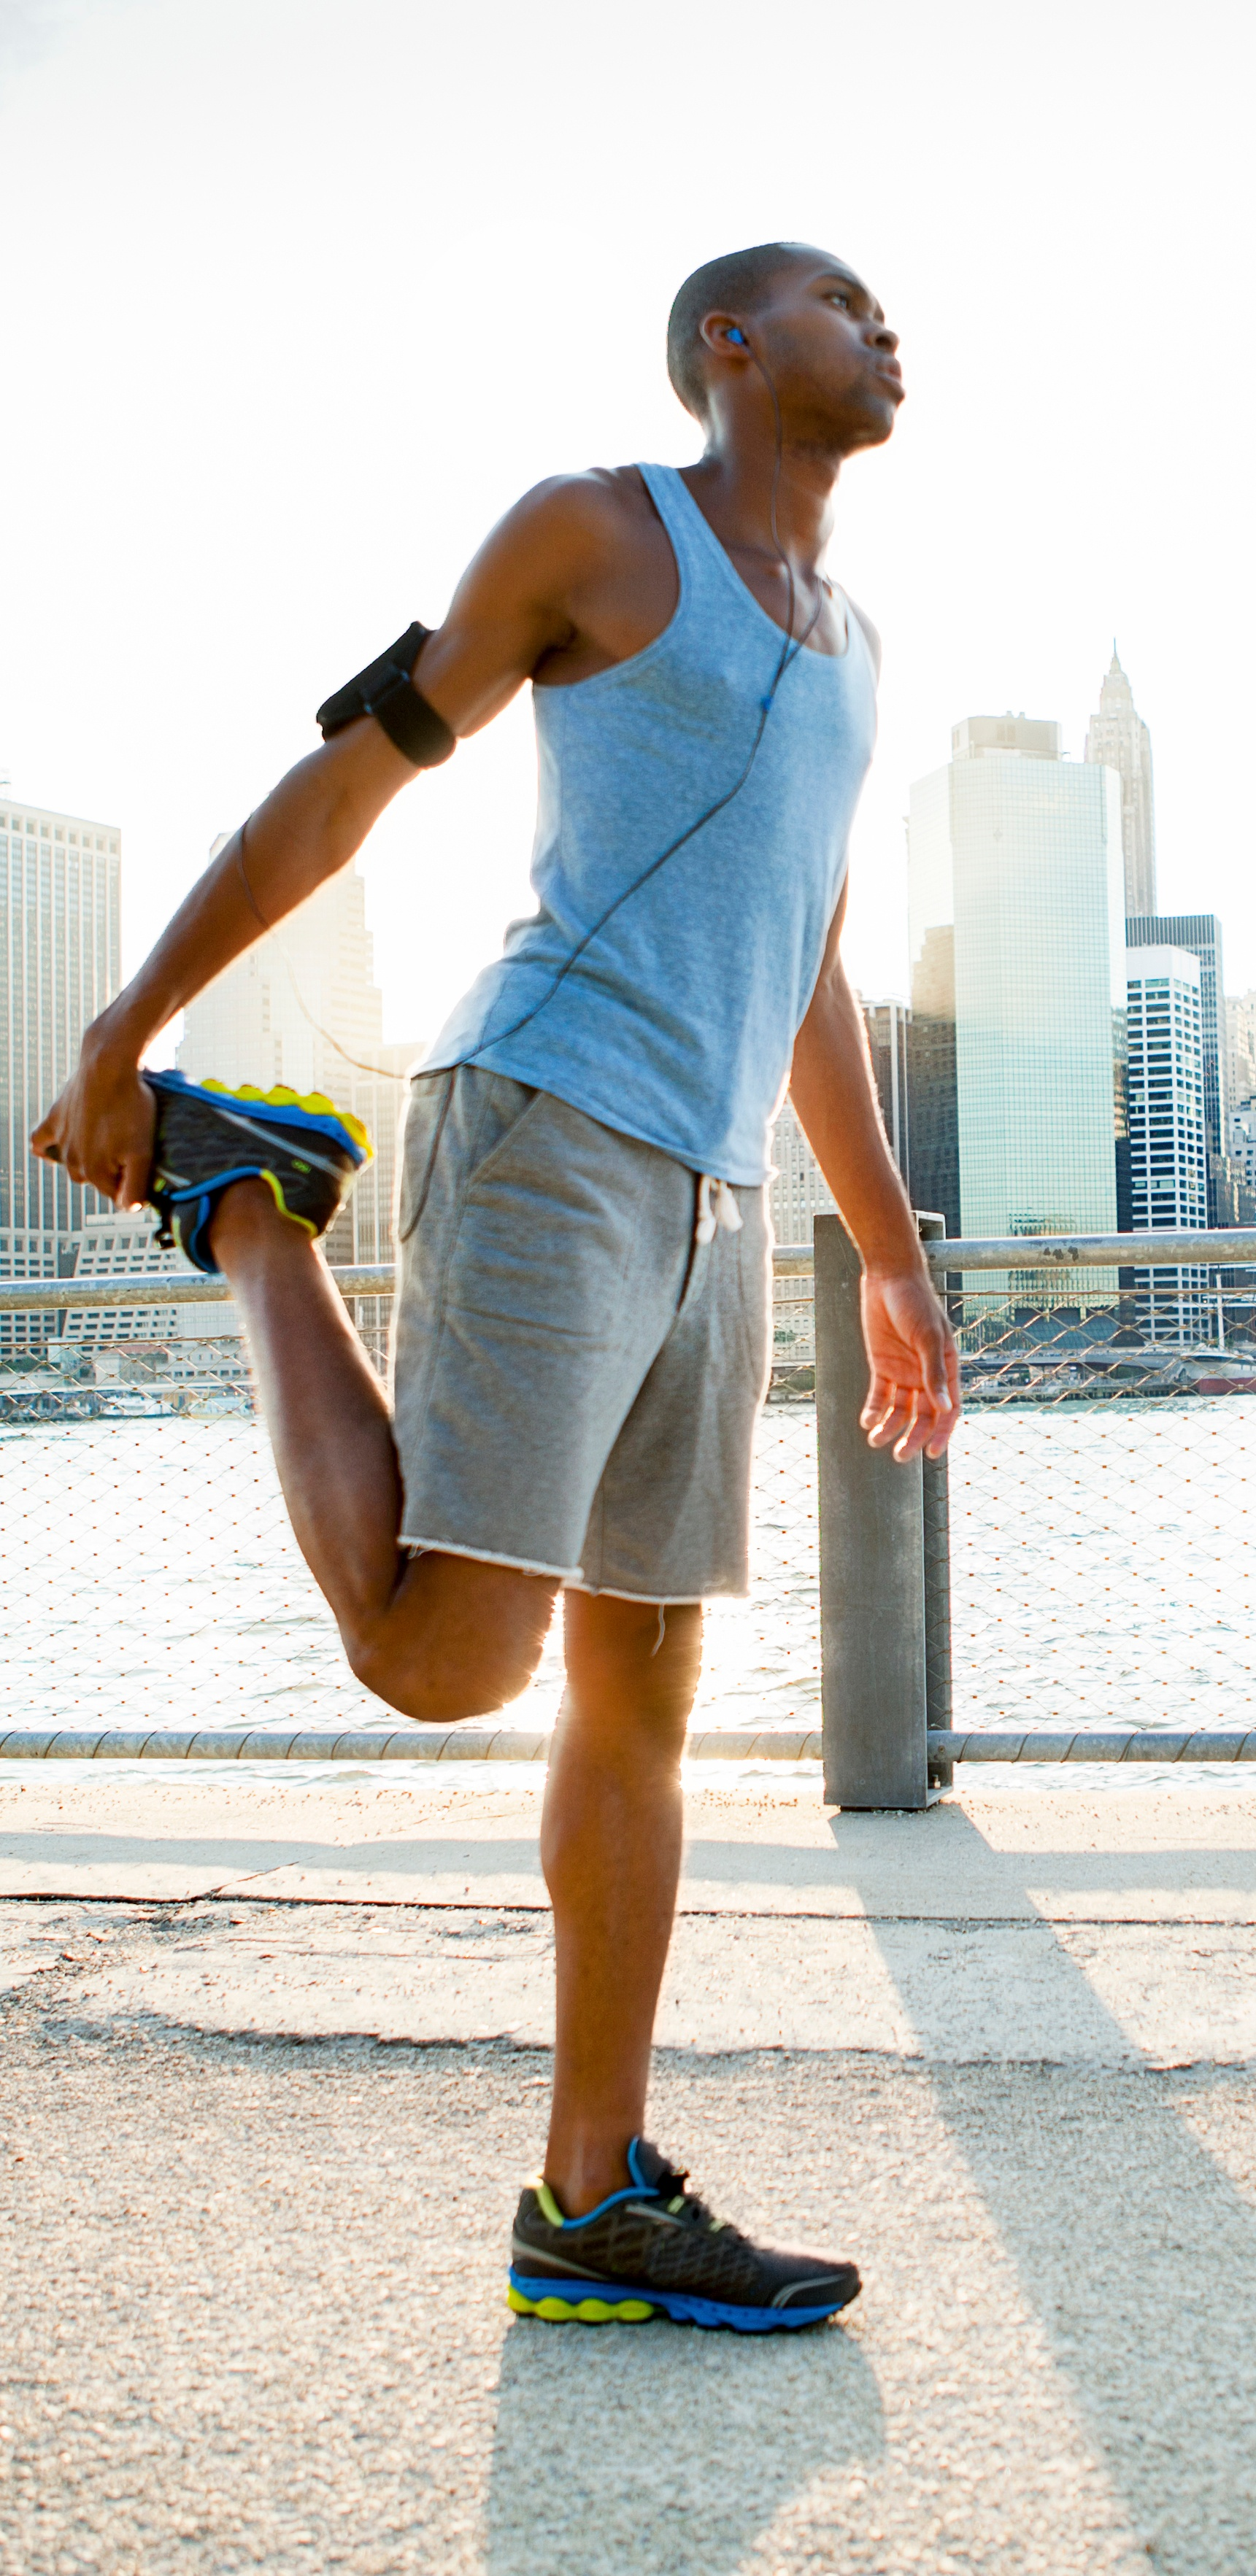 jogger stretching on pier